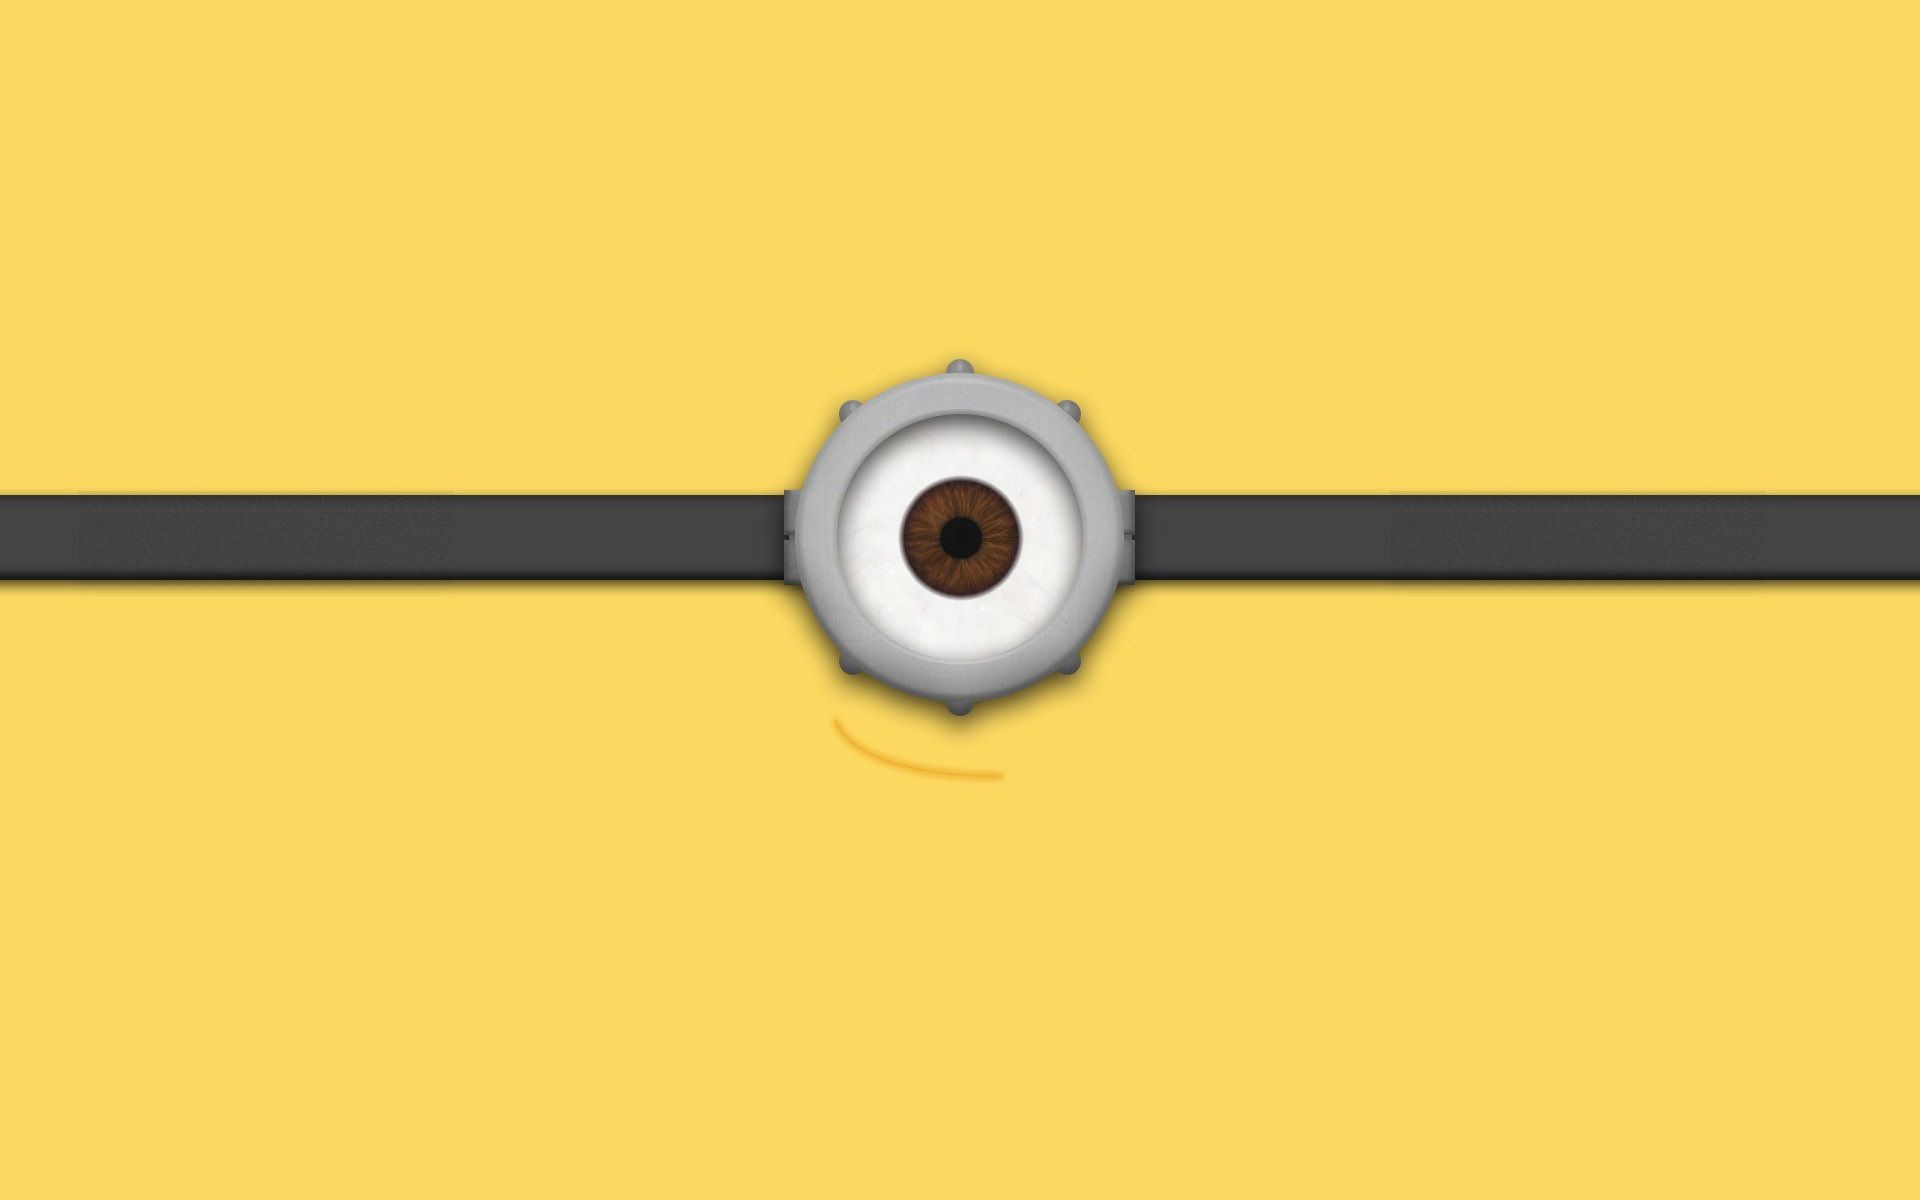 Despicable Me HD Wallpapers Backgrounds Wallpaper Minions Despicable Me Wallpapers  Wallpapers)